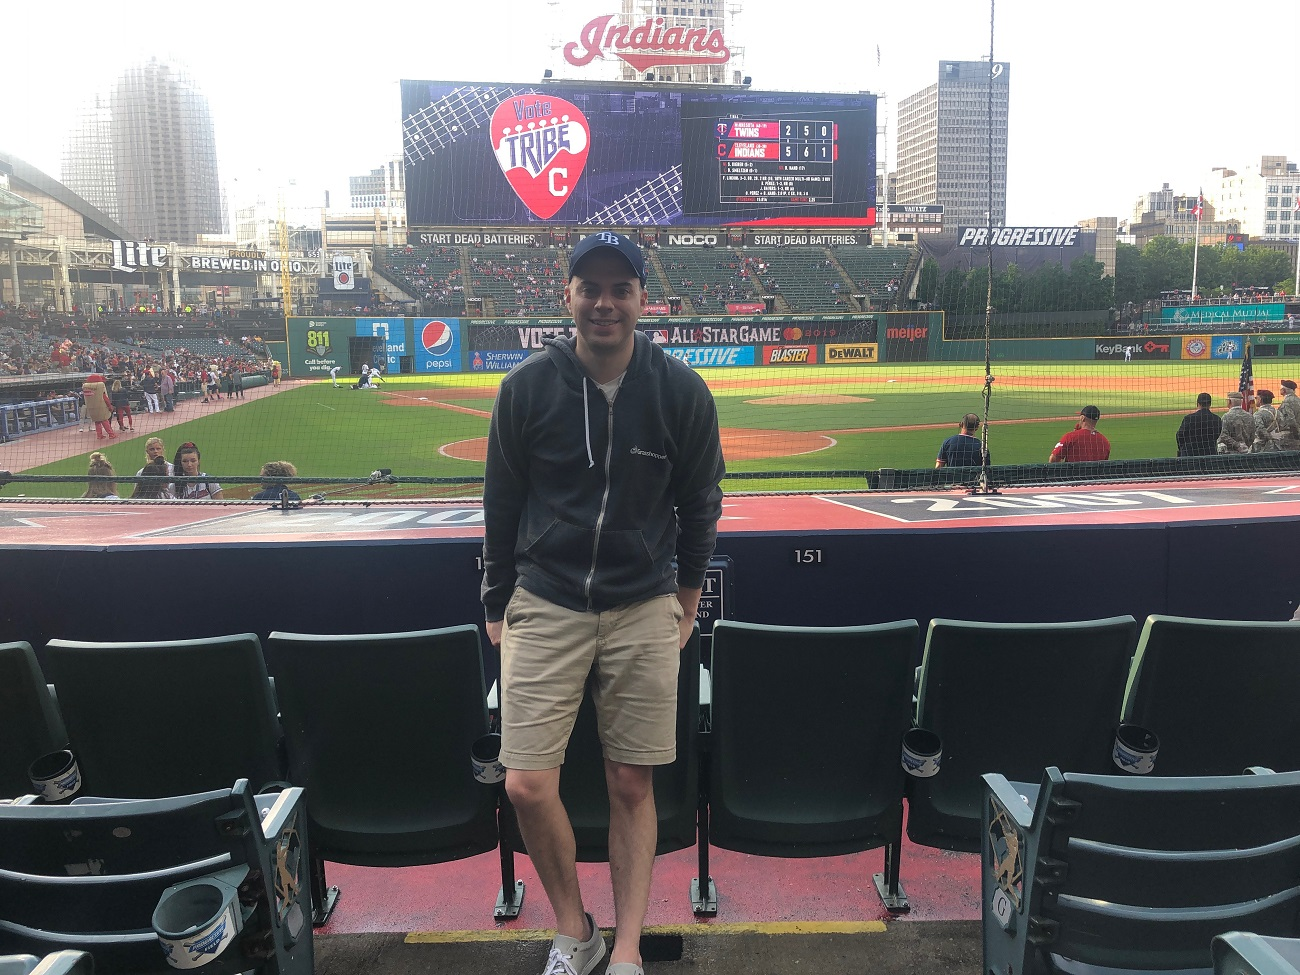 Greg at Progressive Field